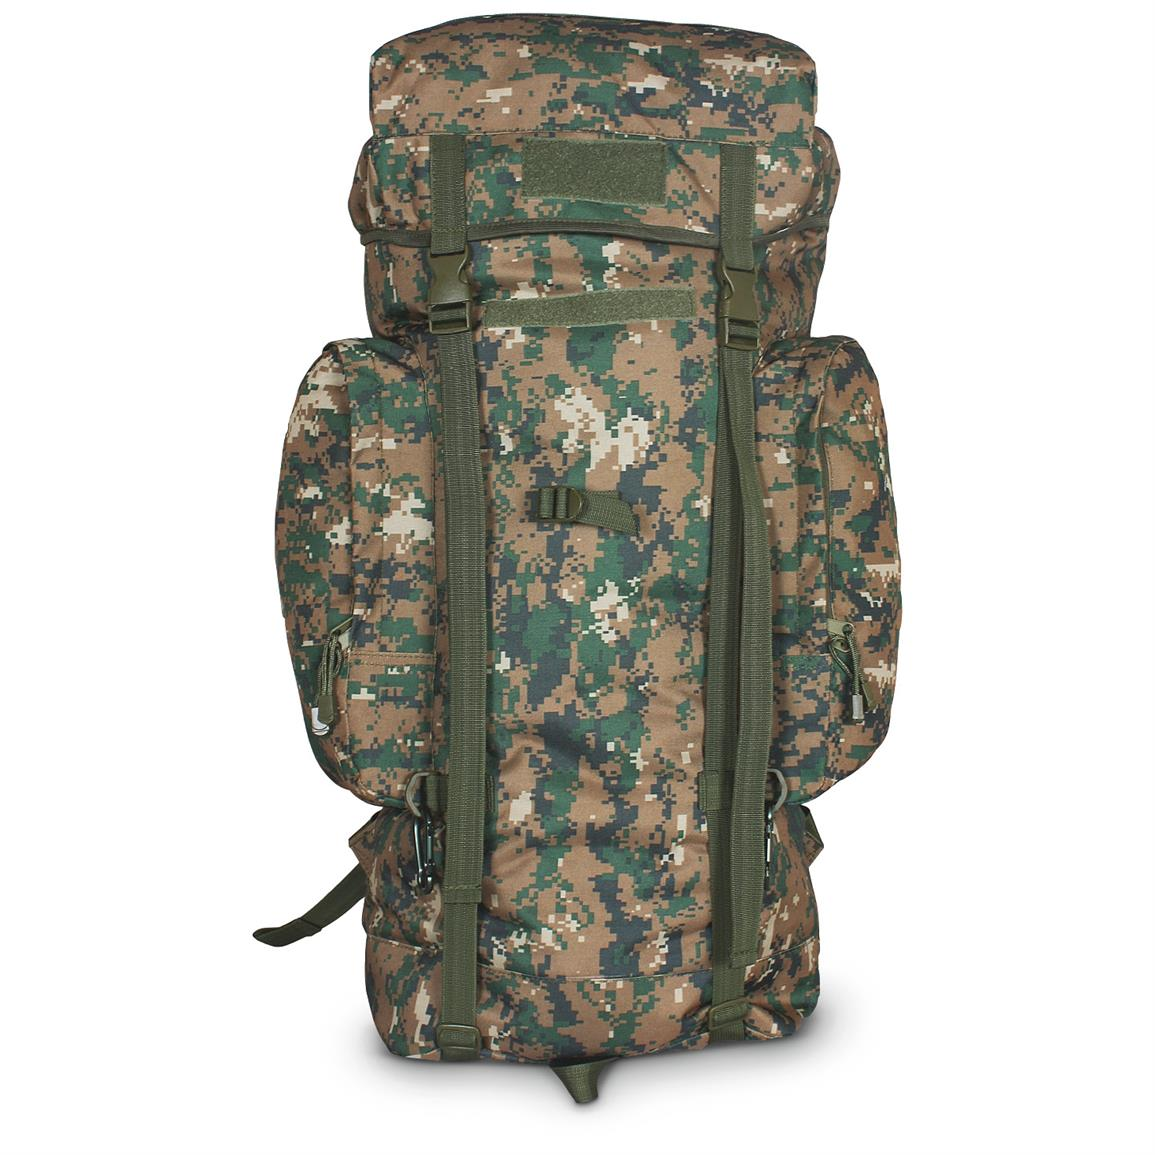 Fox Tactical Rio Grande Pack, 45 liters, Digital Woodland